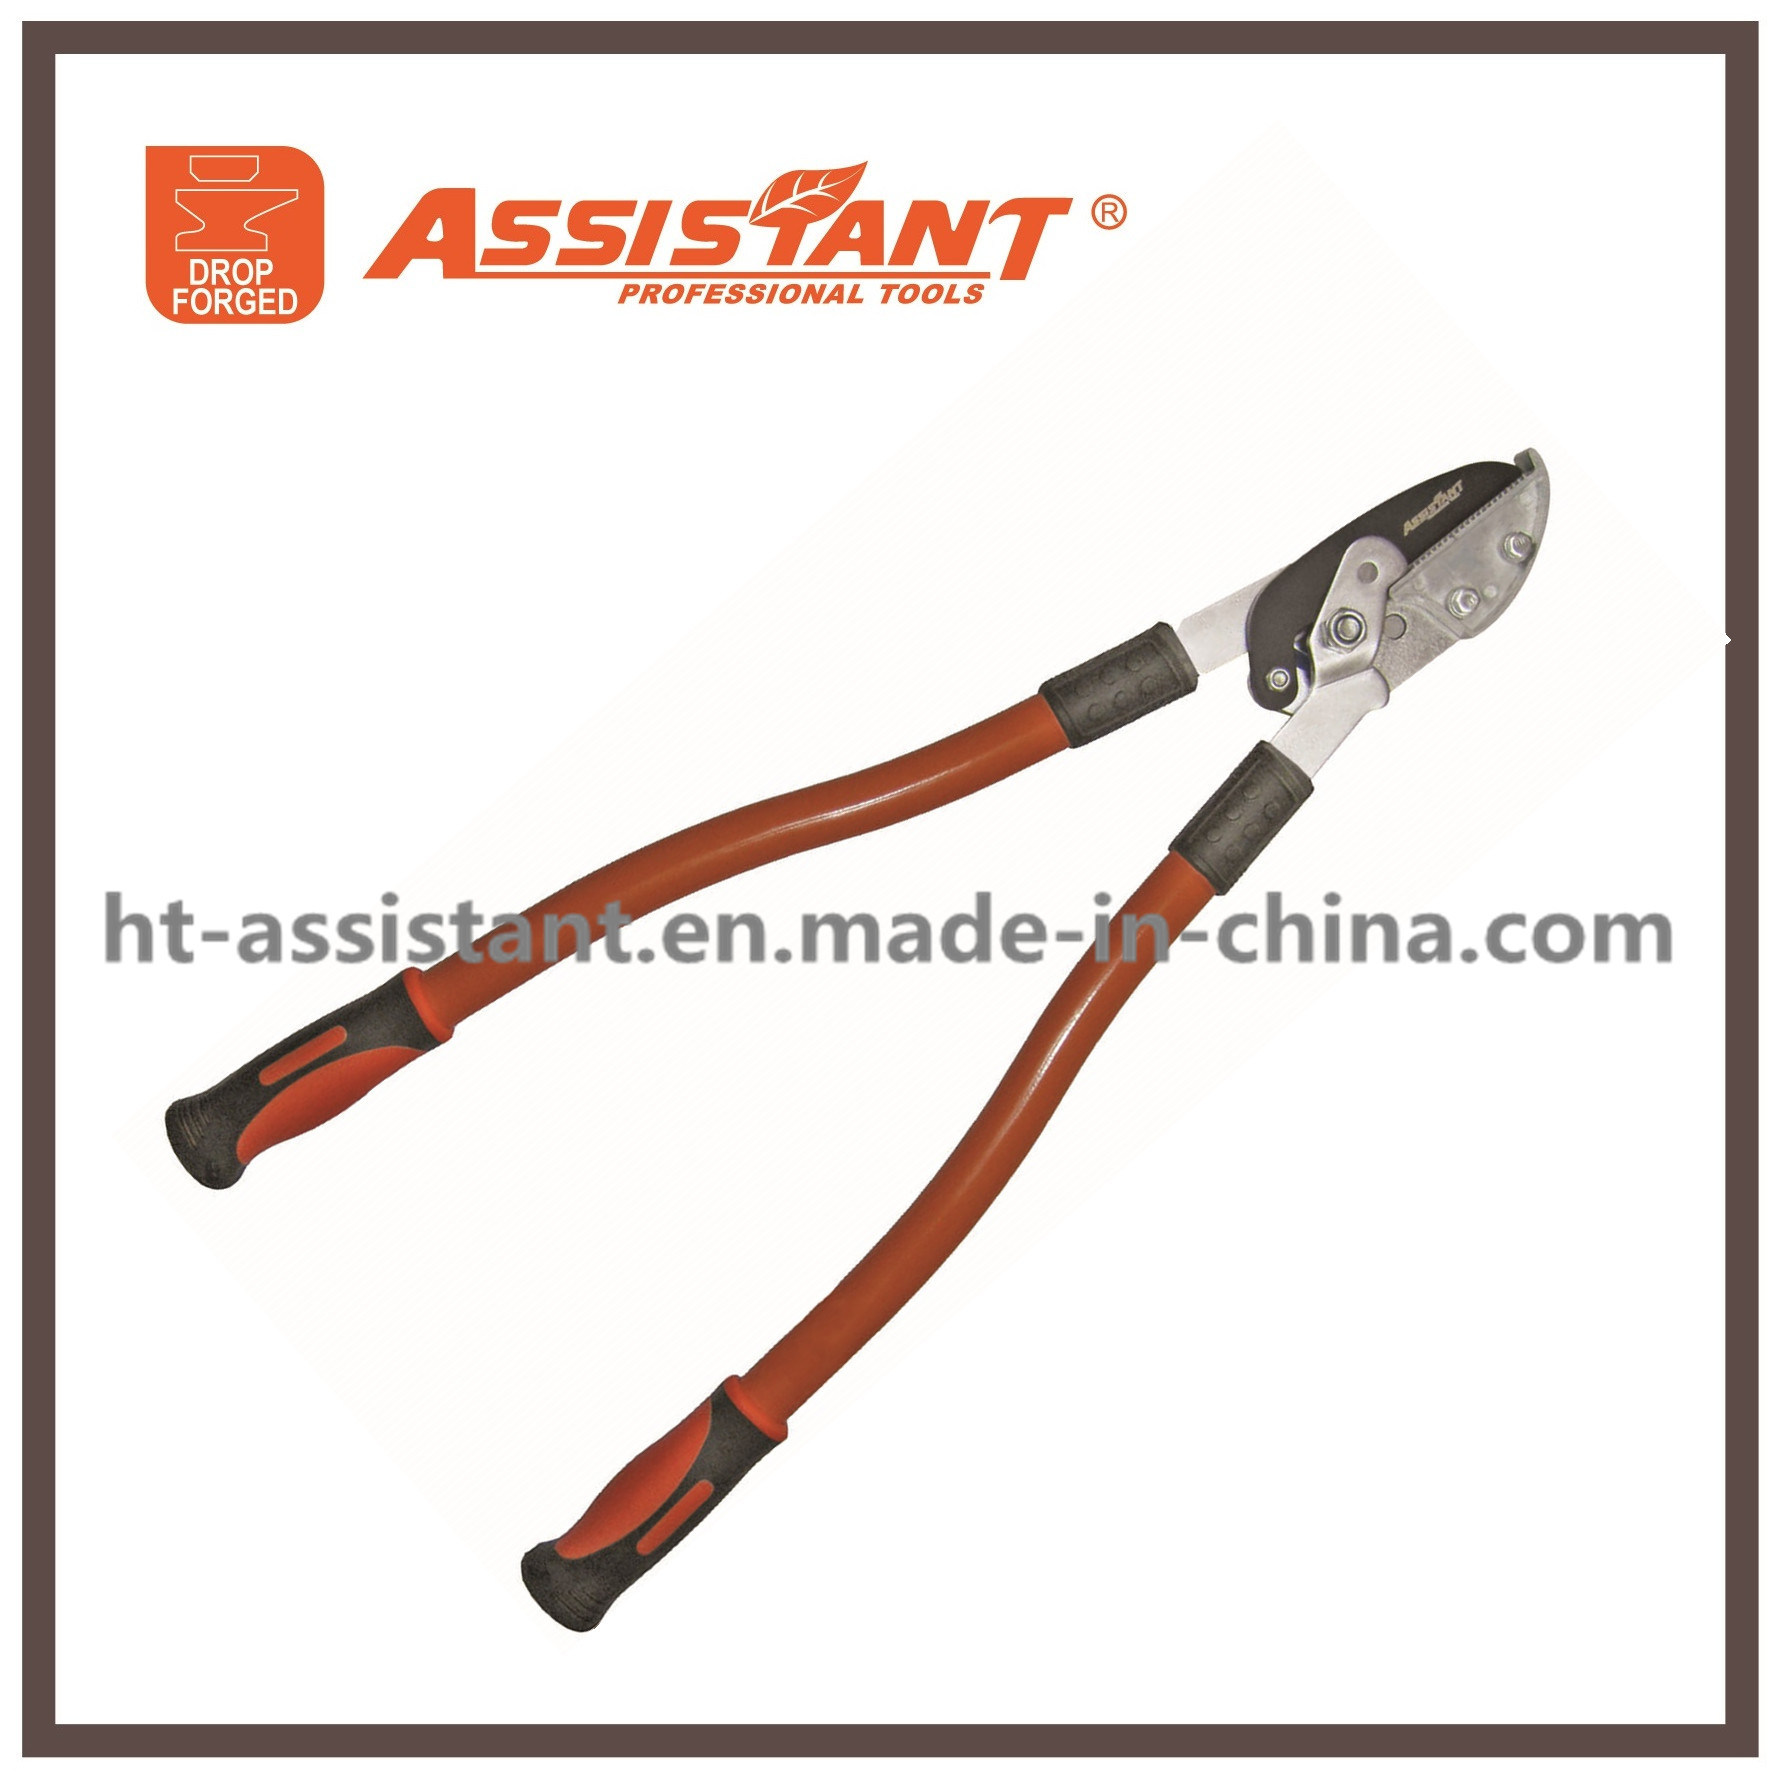 Compound Anvil Lopping Shears Horticultural Vine Loppers